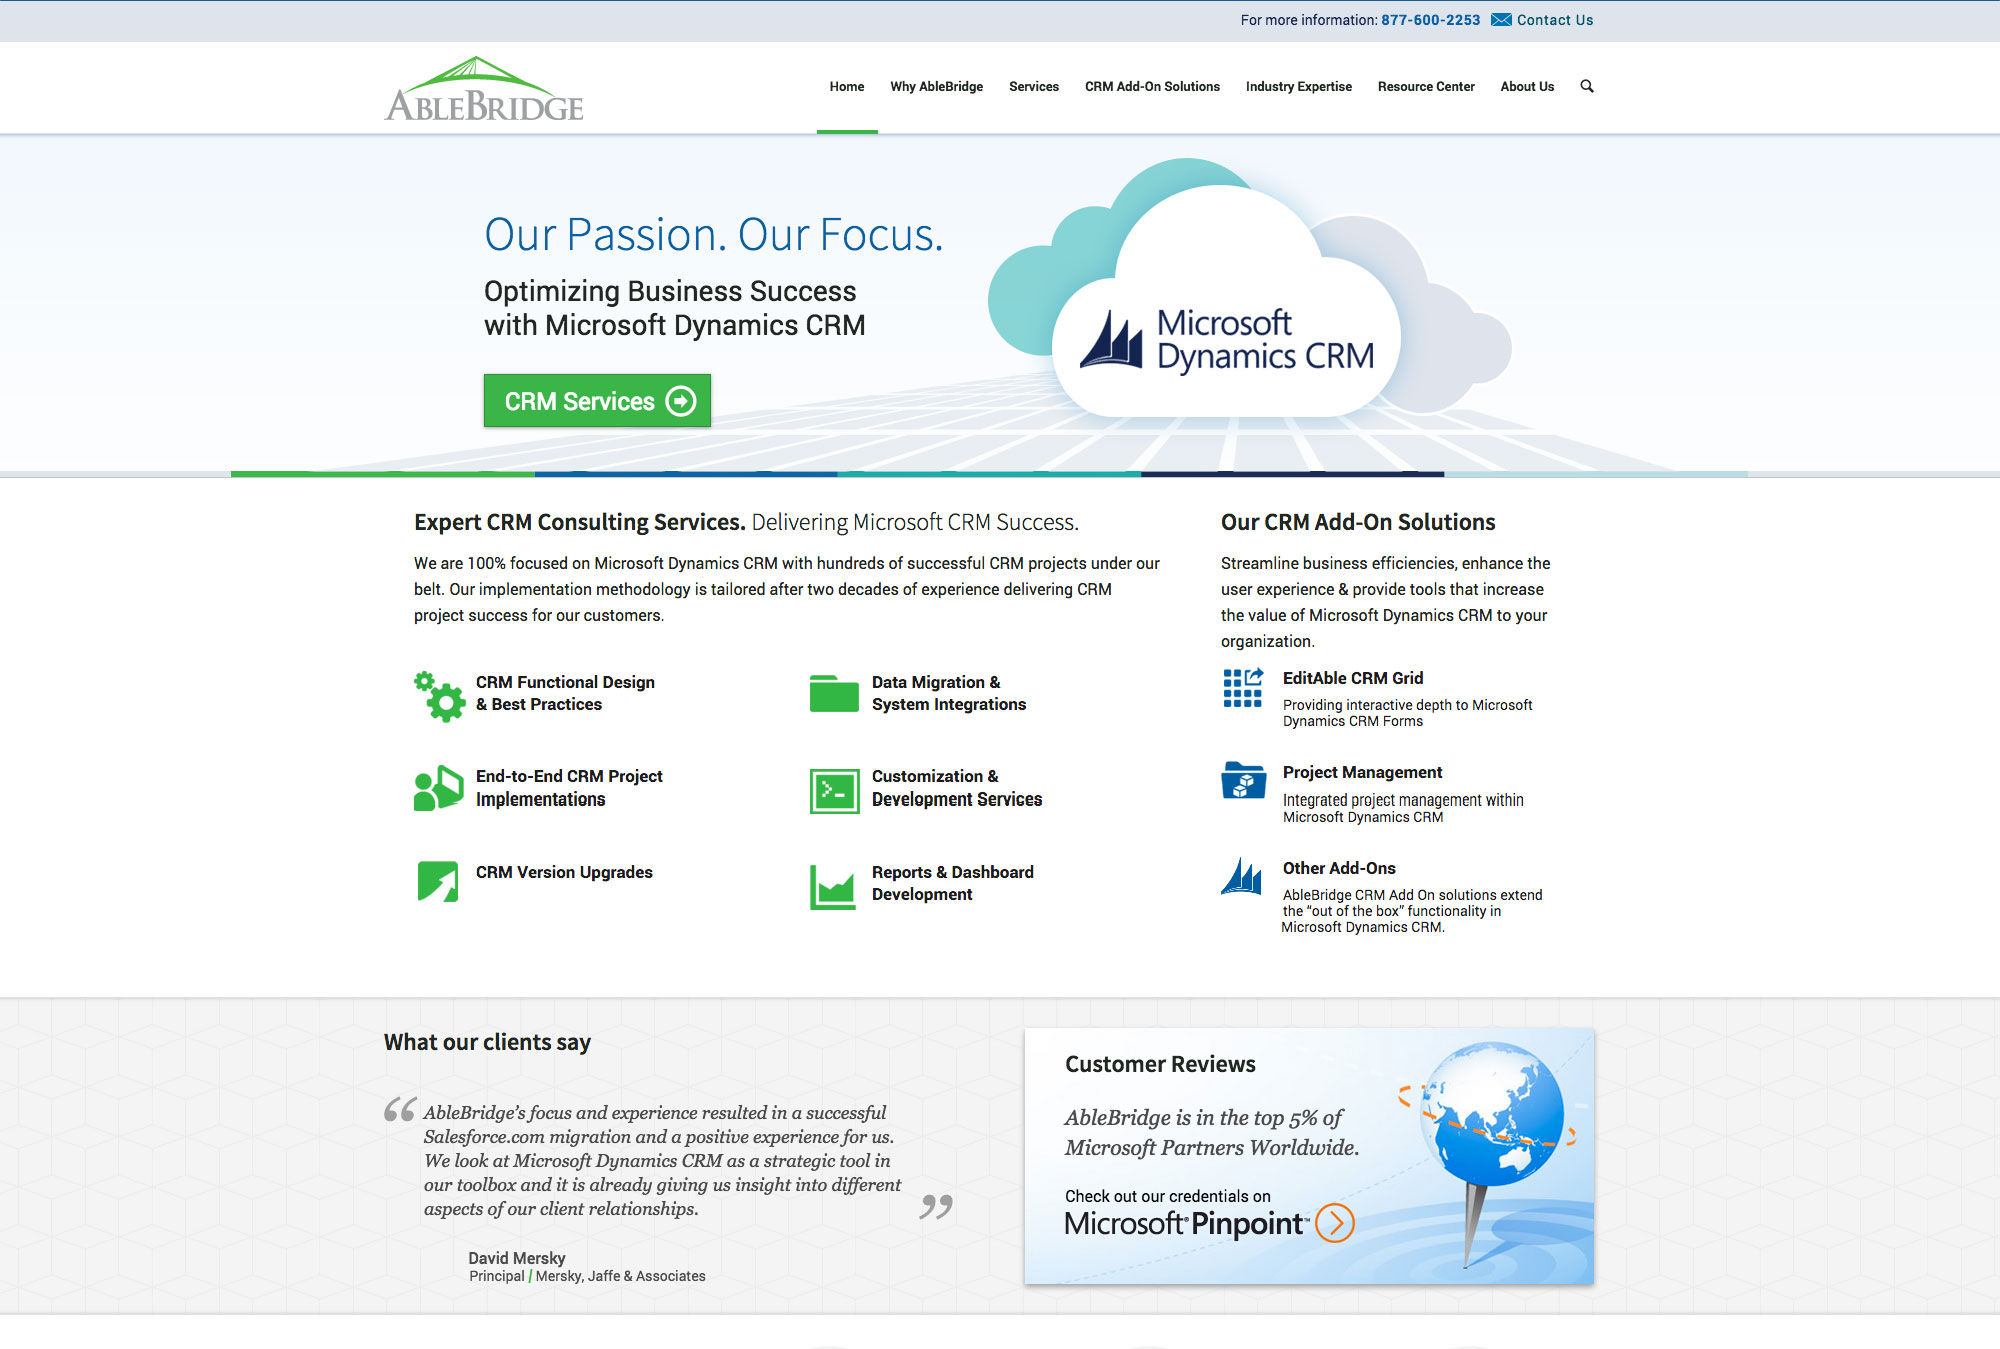 Ablebridge Website Redesign And Cms Migration Backbone Media